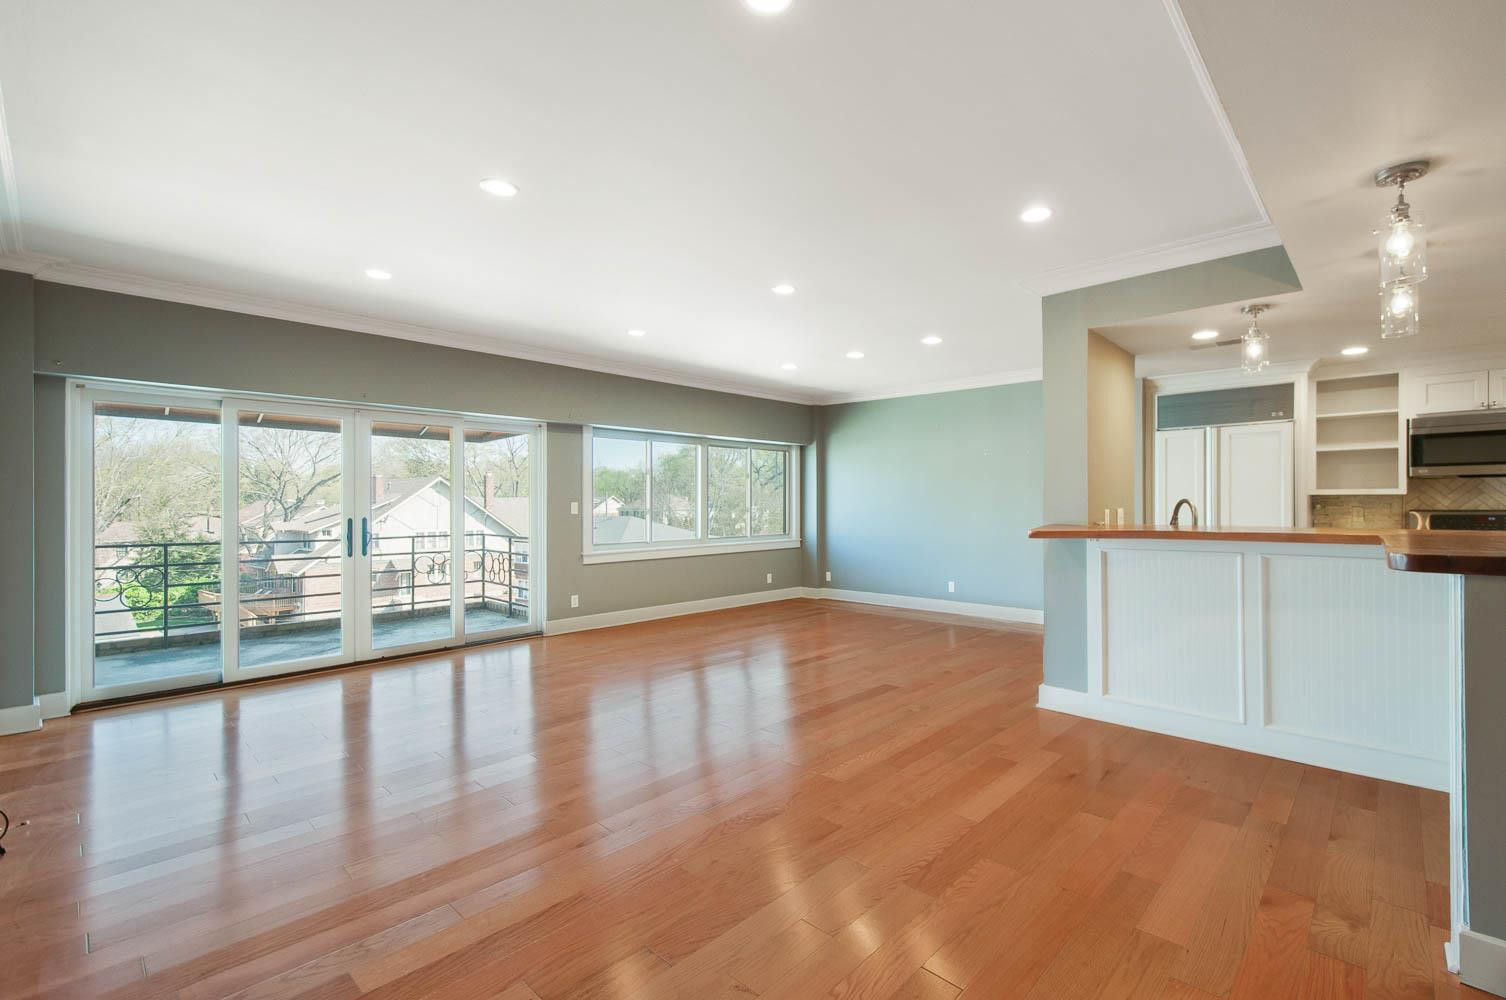 cheap hardwood flooring nashville tn of 100 best 2 bedroom apartments in nashville tn with pics p 7 intended for 214d161391c57d77aceaf4195c34df56